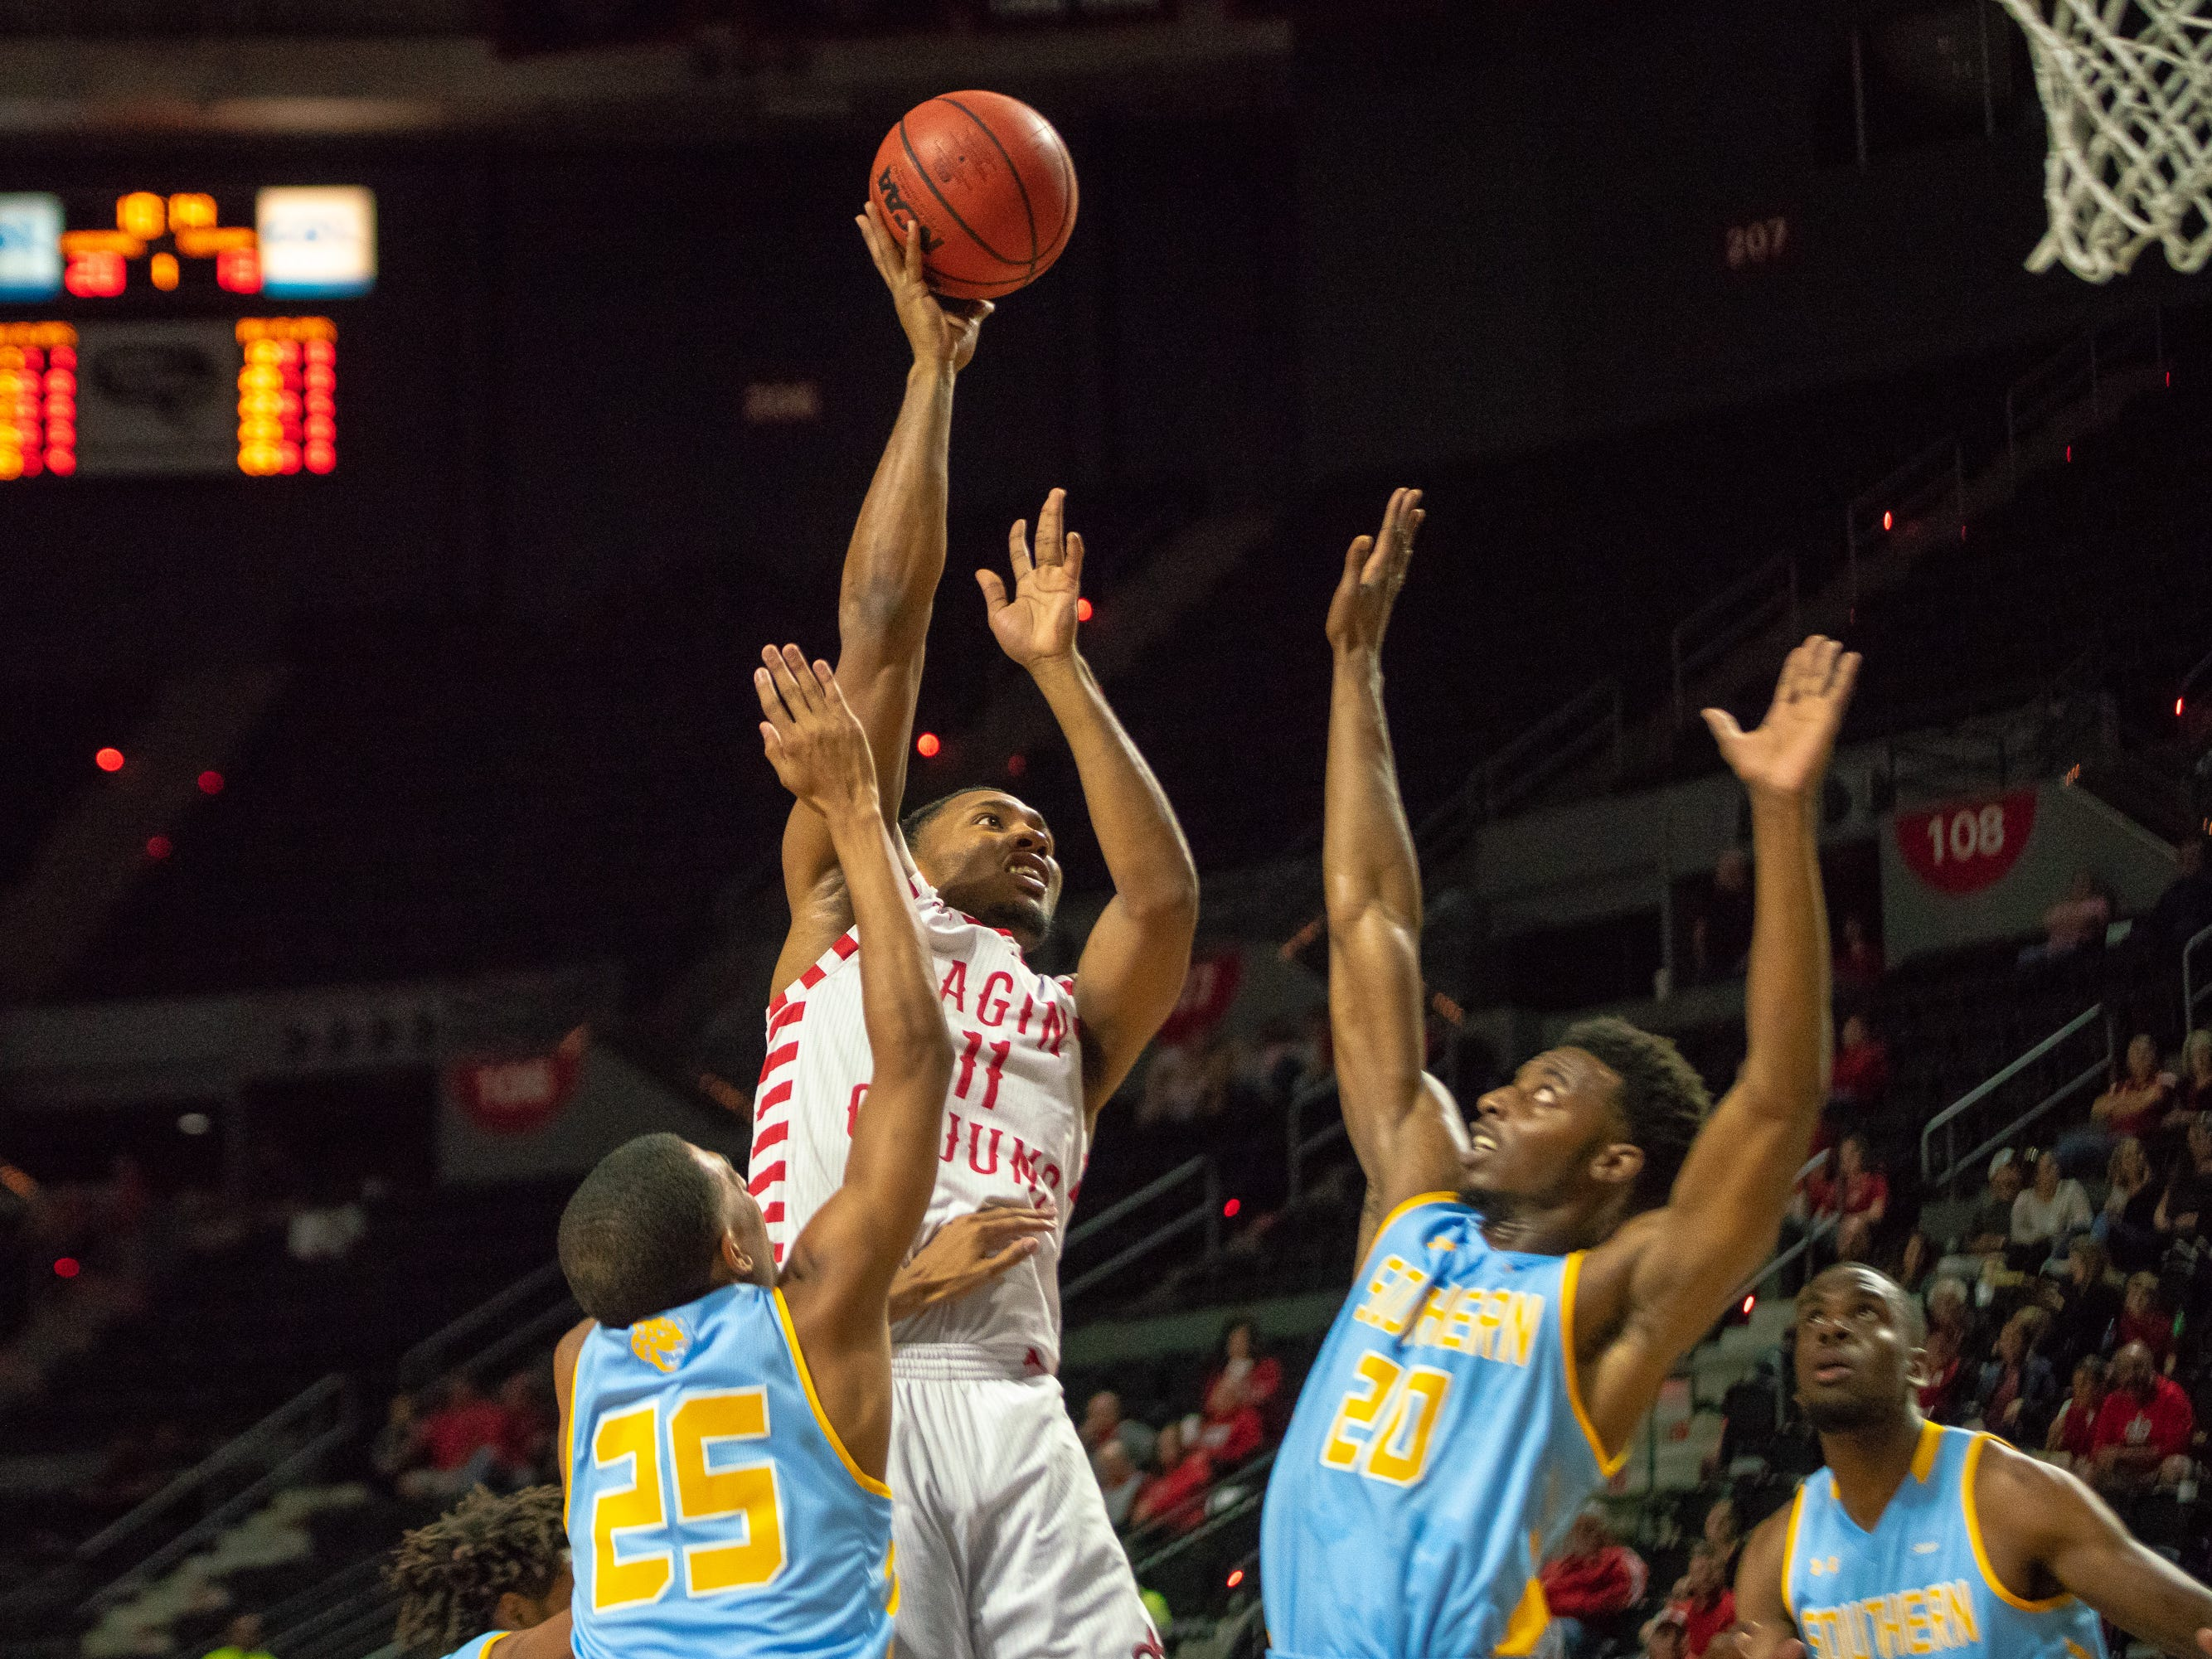 UL's Jerekius Davis shoots over the defenders as the Ragin' Cajuns play against the Southern University Jaguars at the Cajundome on December 1, 2018.